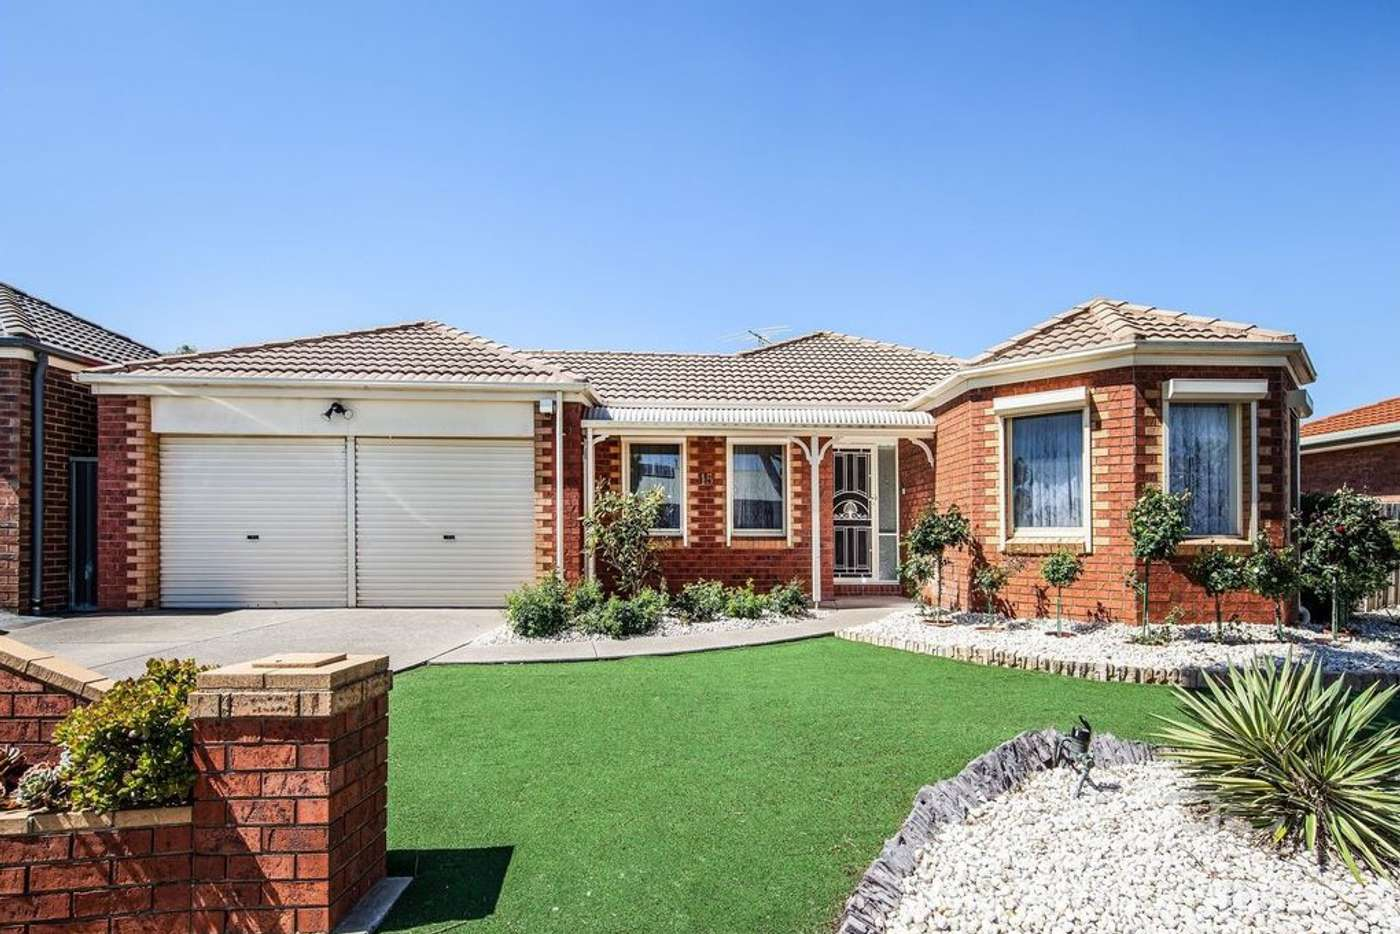 Main view of Homely house listing, 15 Fairhaven Crescent, Hoppers Crossing VIC 3029